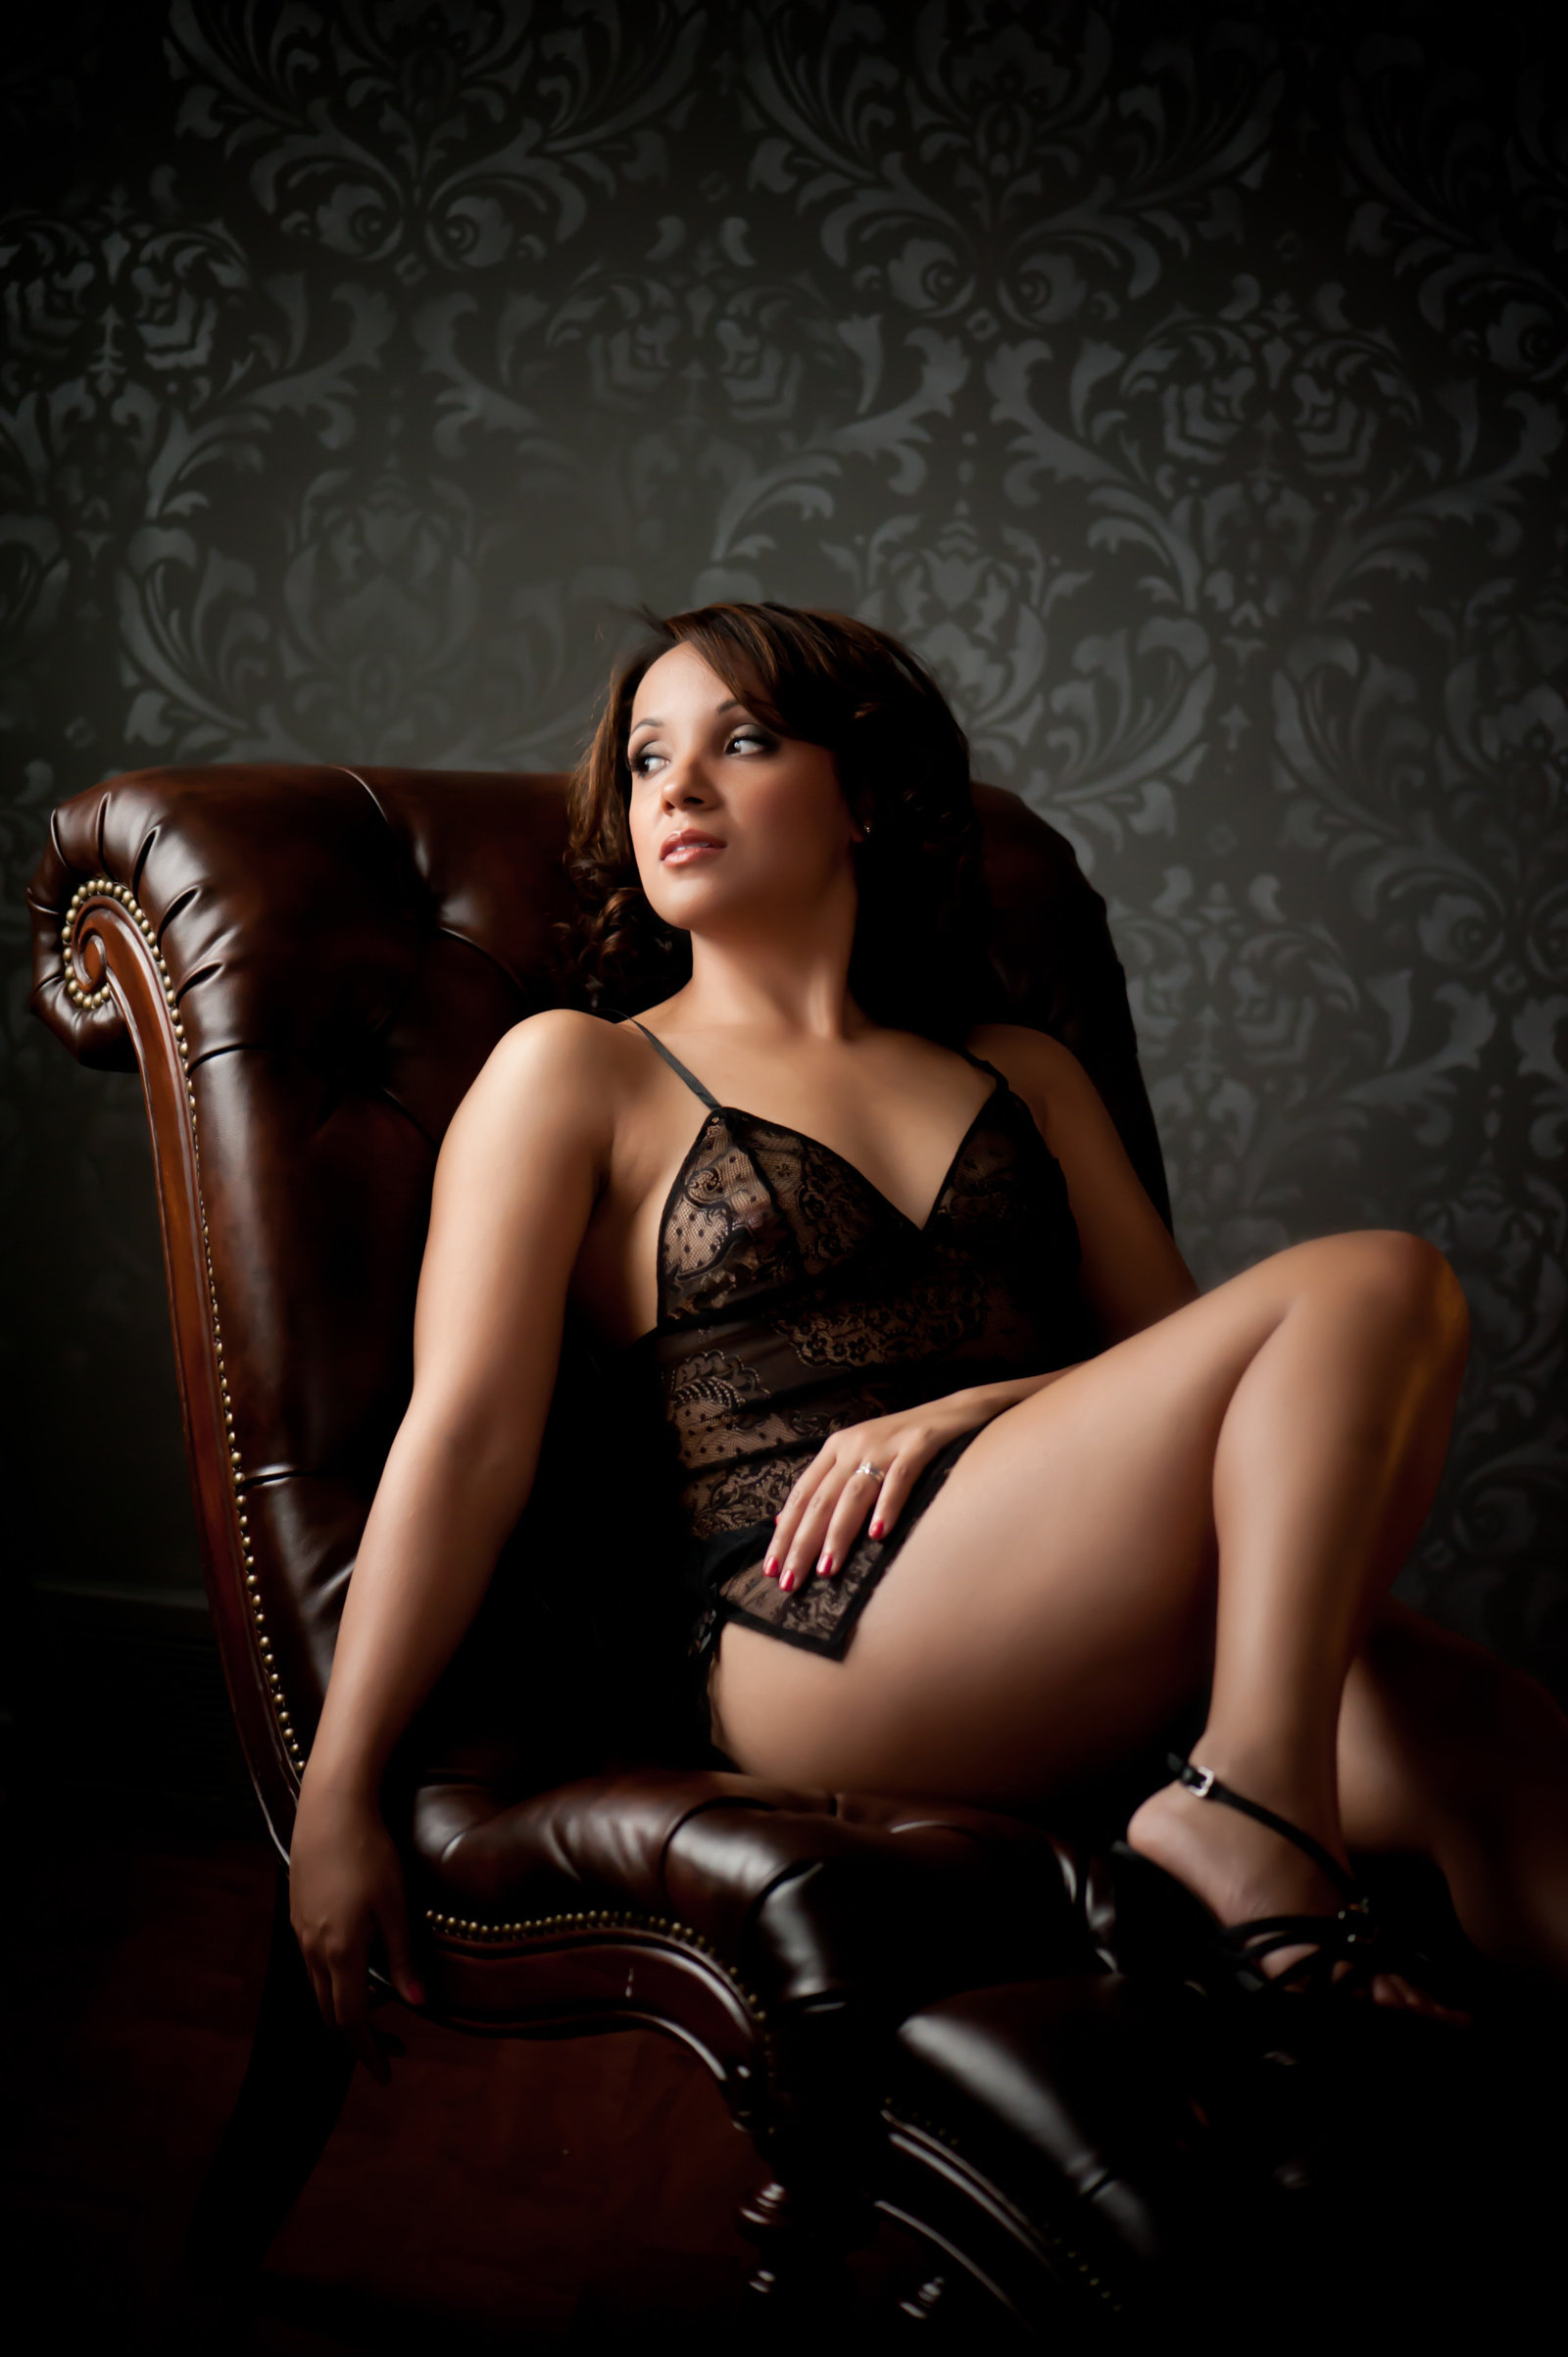 minneapolis-boudoir-photography-452